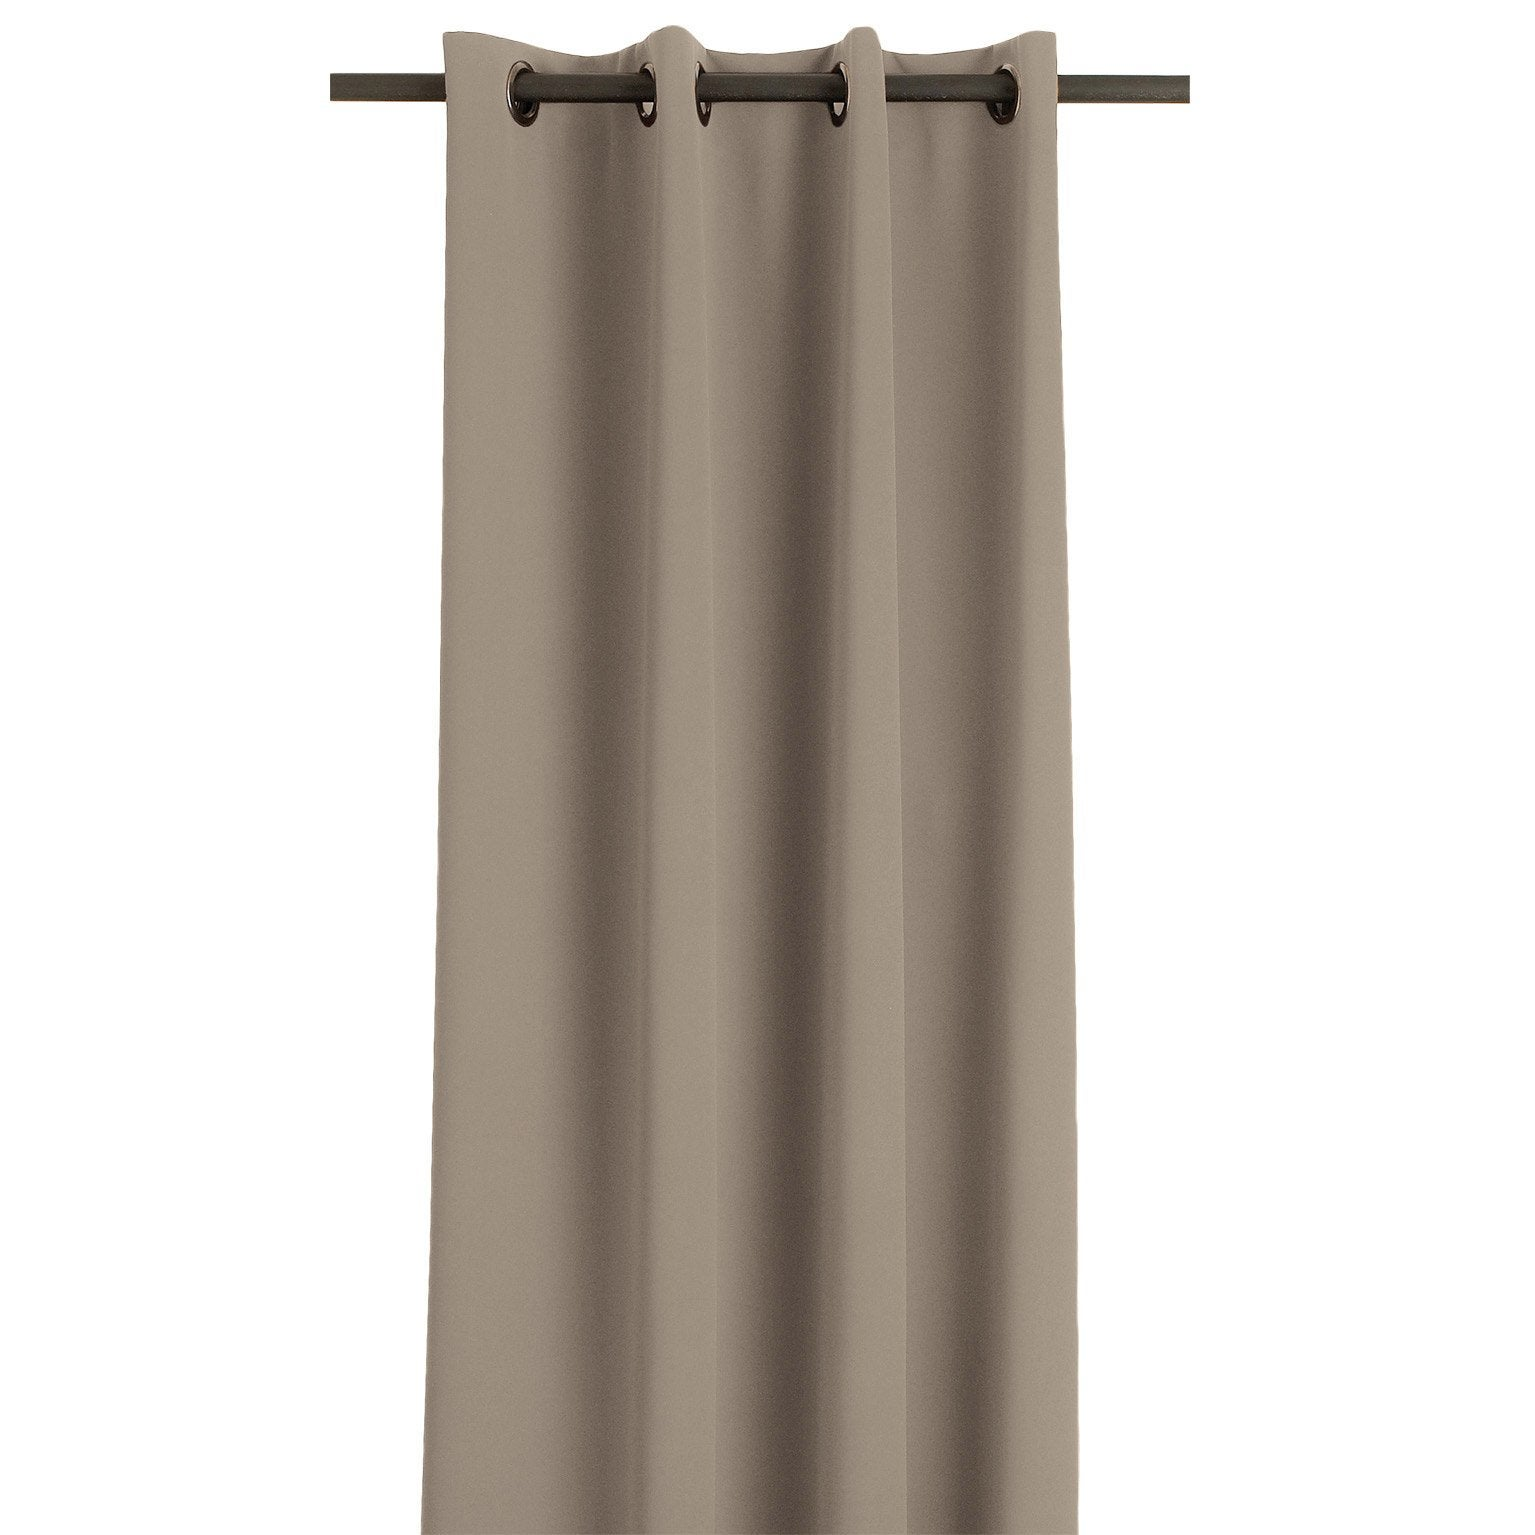 Rideau Occultant Thermique Taupe L 145 X H 260 Cm Leroy Merlin